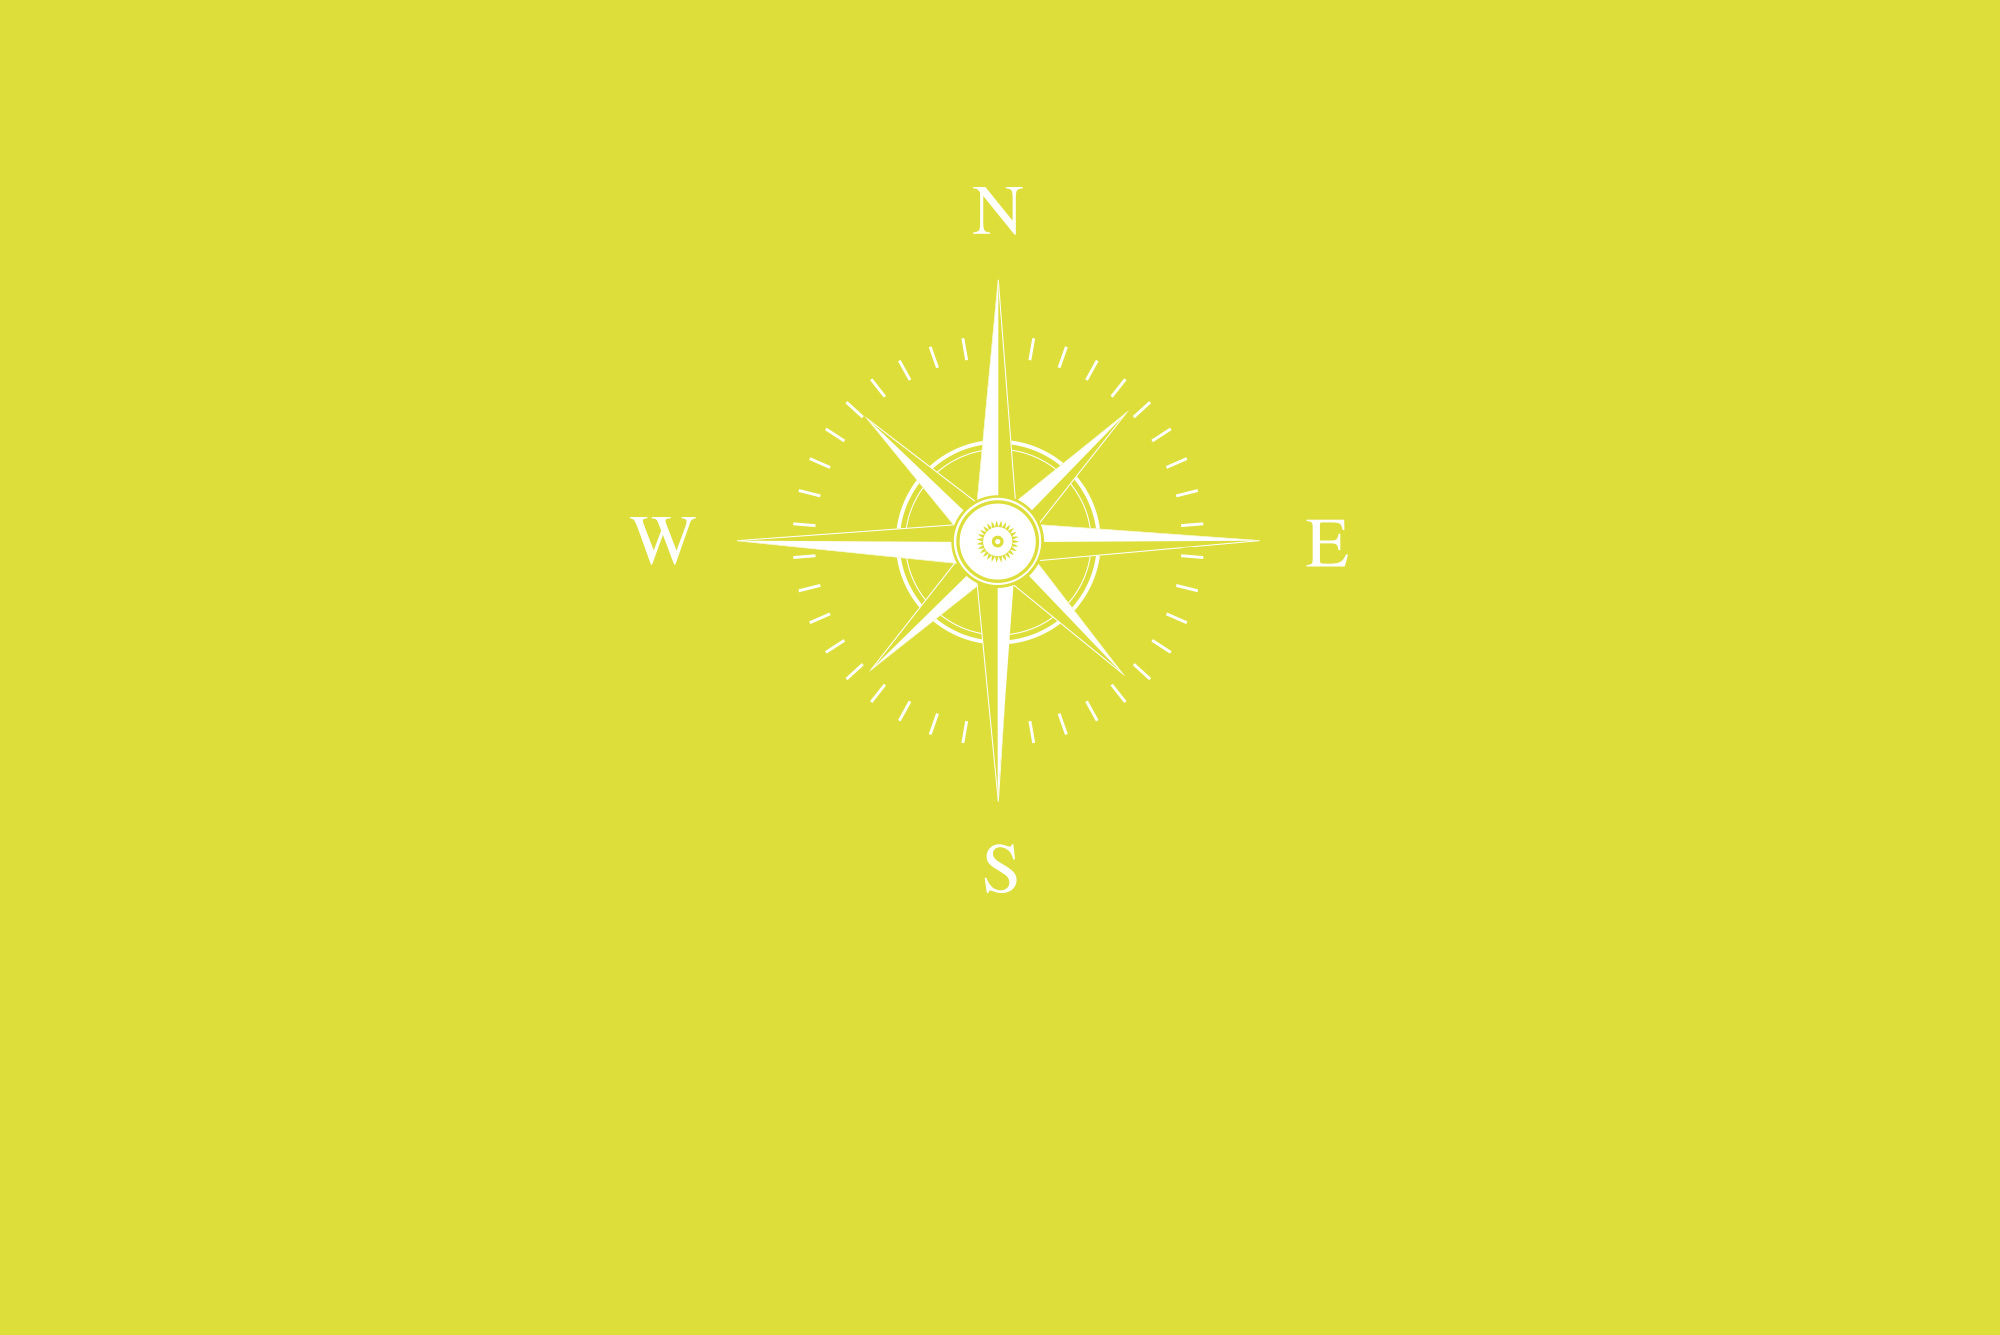 Compass on yellow background - Discovery sessions